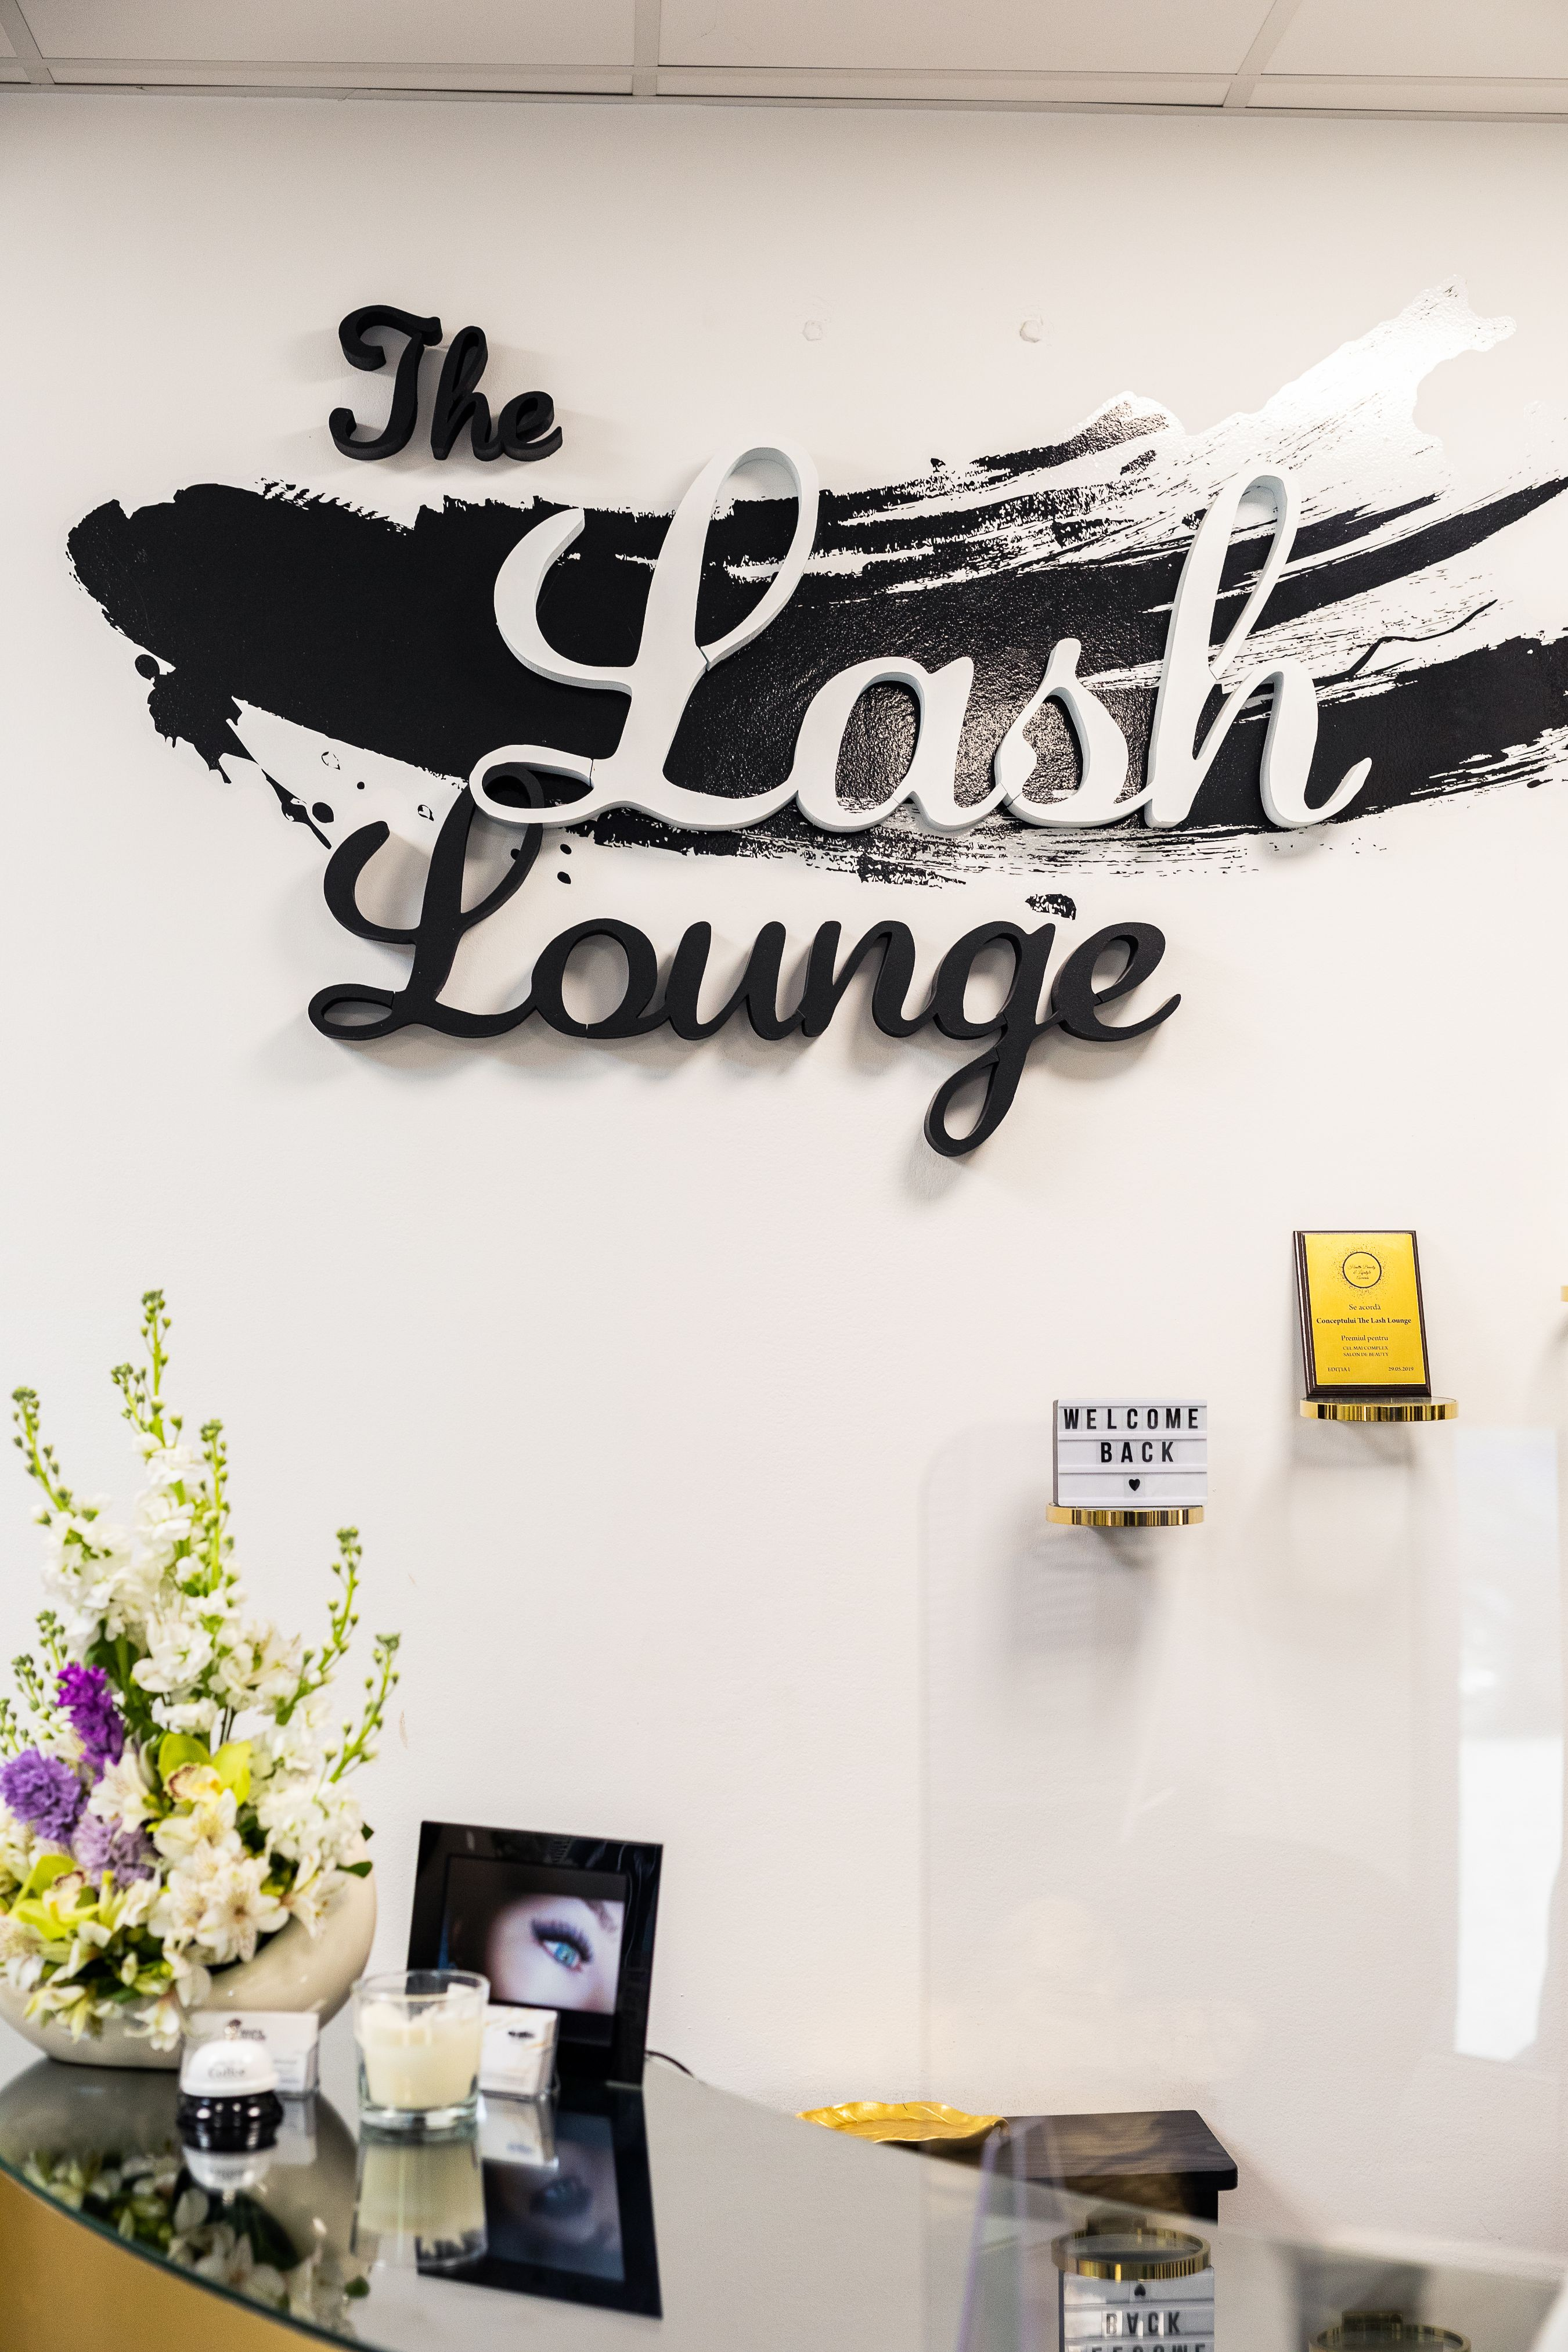 Salon de infrumusetare The Lash Lounge. Servicii: gene, sprancene, laminare sprancene, Make Up, Machiaj profesional, Coafor, Frizerie, Epilare definitiva. Beauty Salon Bucuresti.